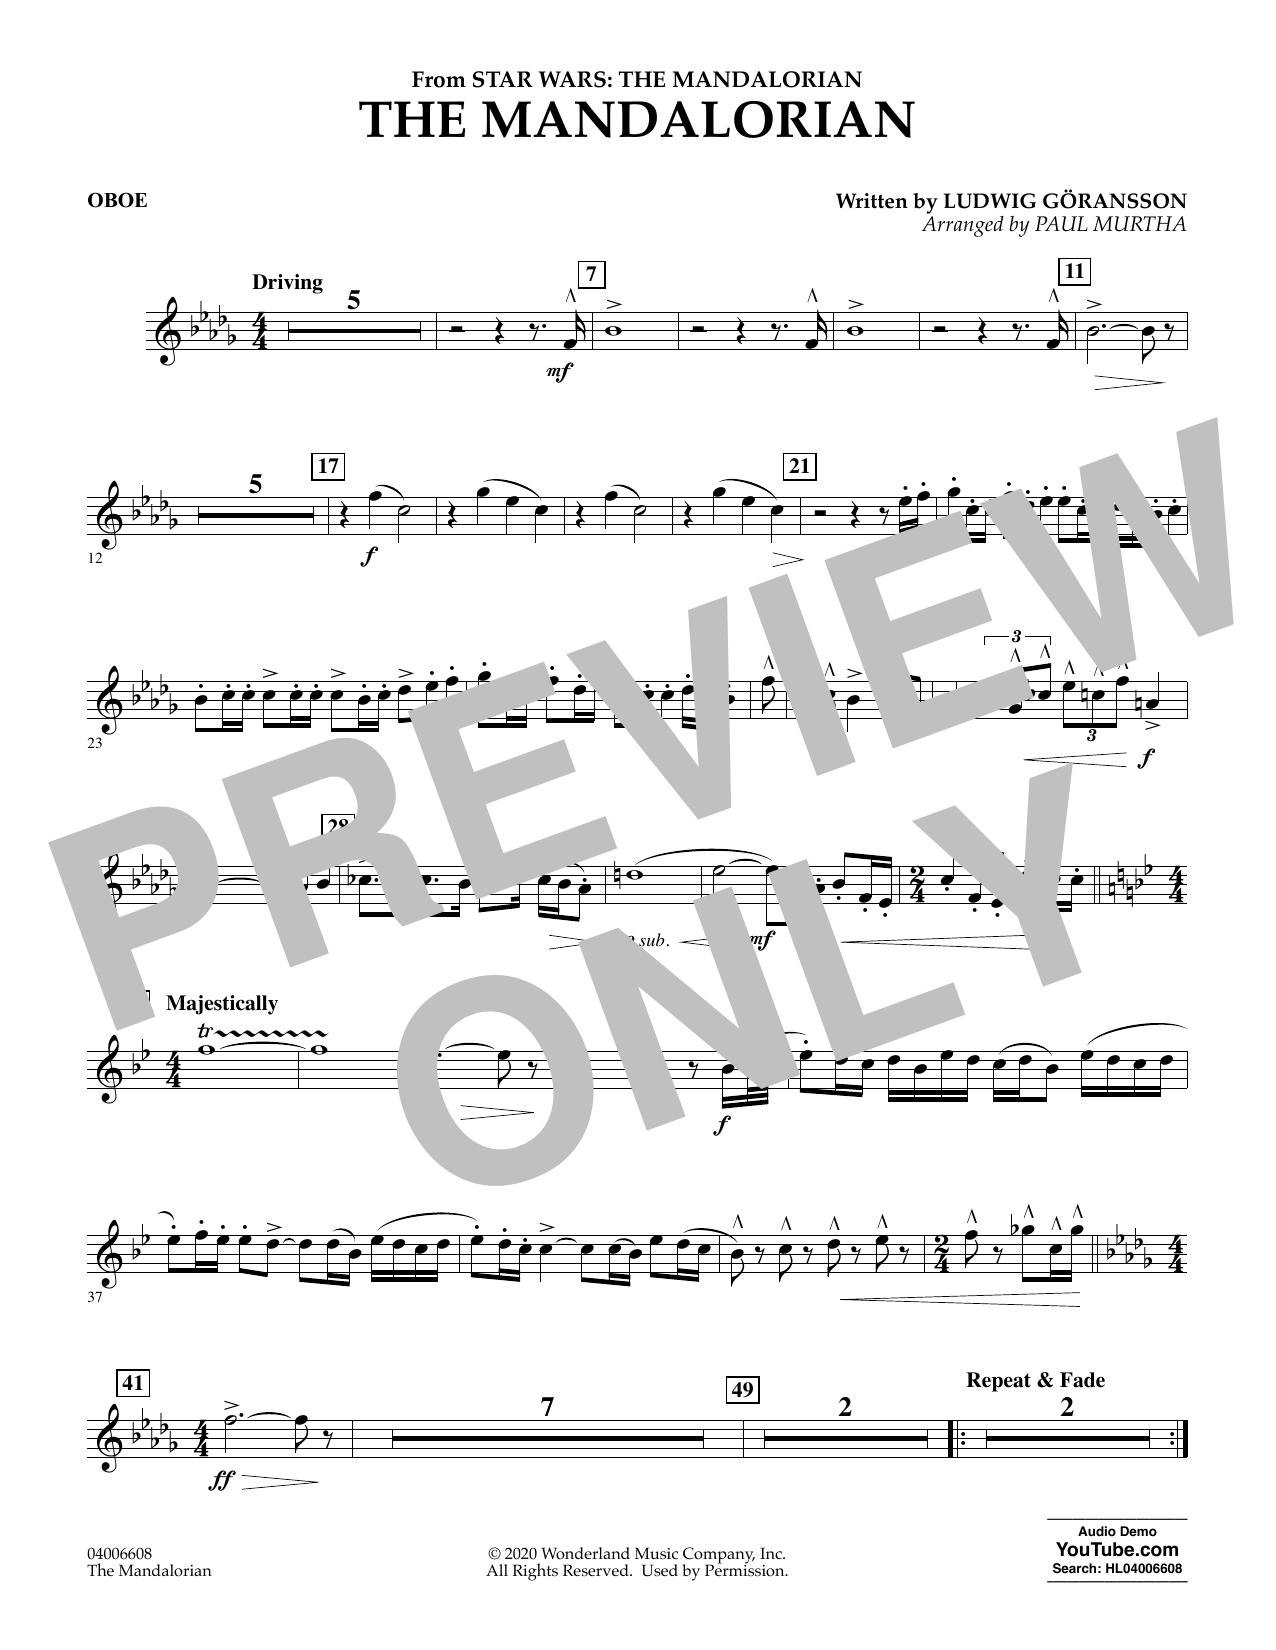 Ludwig Goransson The Mandalorian (from Star Wars: The Mandalorian) (arr. Paul Murtha) - Oboe sheet music notes and chords. Download Printable PDF.